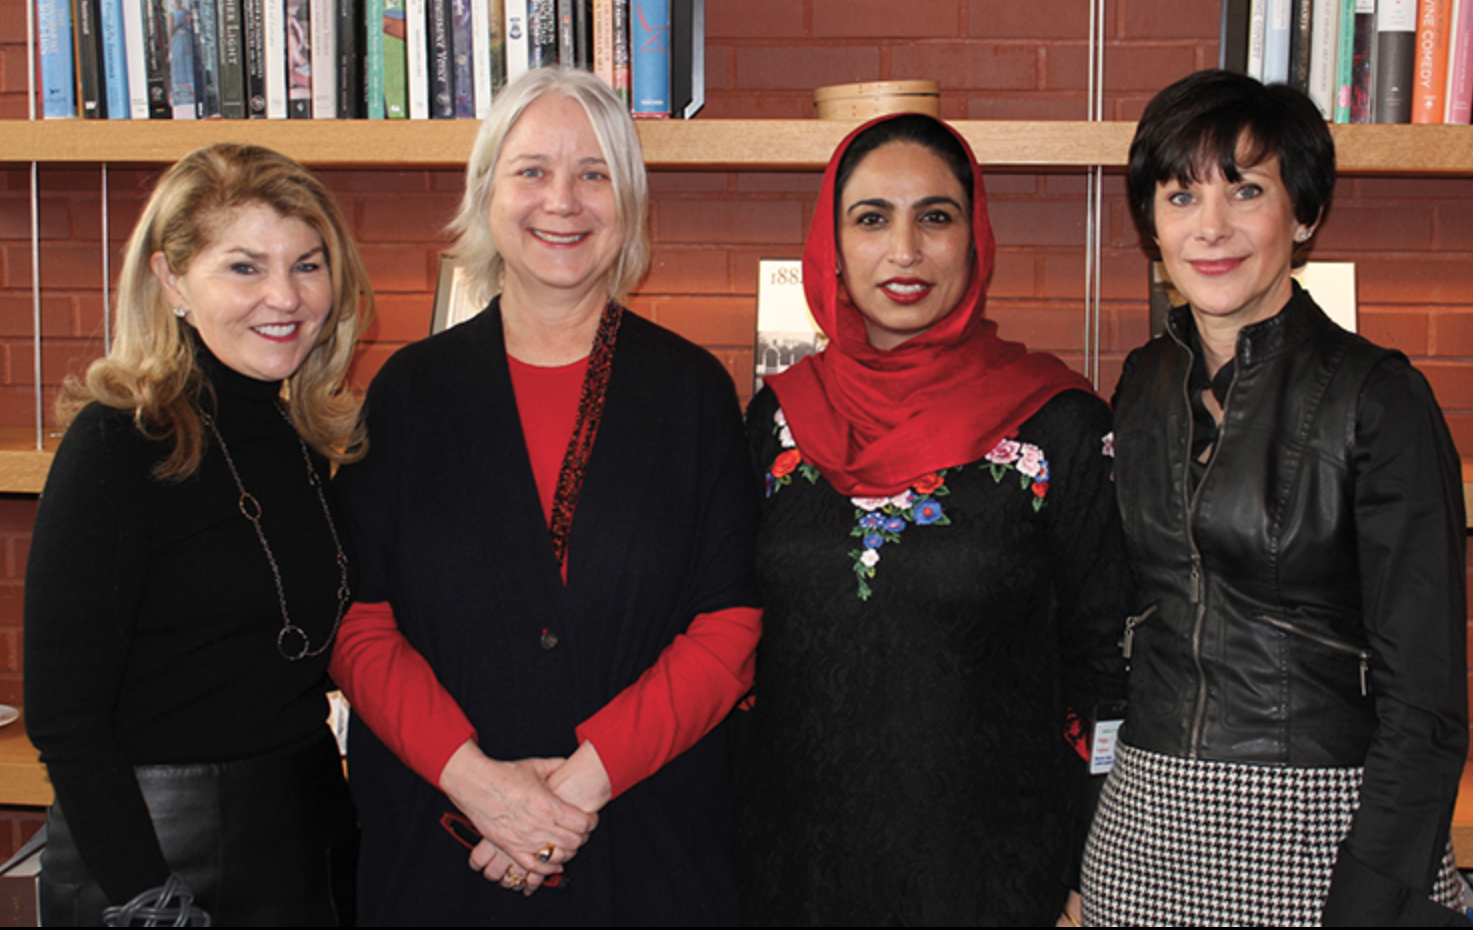 """Left to right: Anne H. Fitzpatrick;Pieranna Cavalchini, Tom and Lisa Blumenthal Curator of Contemporary Art; Ambreen Butt, Artist (""""I Need a Hero,""""2017); and Peggy Fogelman, Norma Jean Calderwood Director at the Isabella Stewart Gardner Museum"""